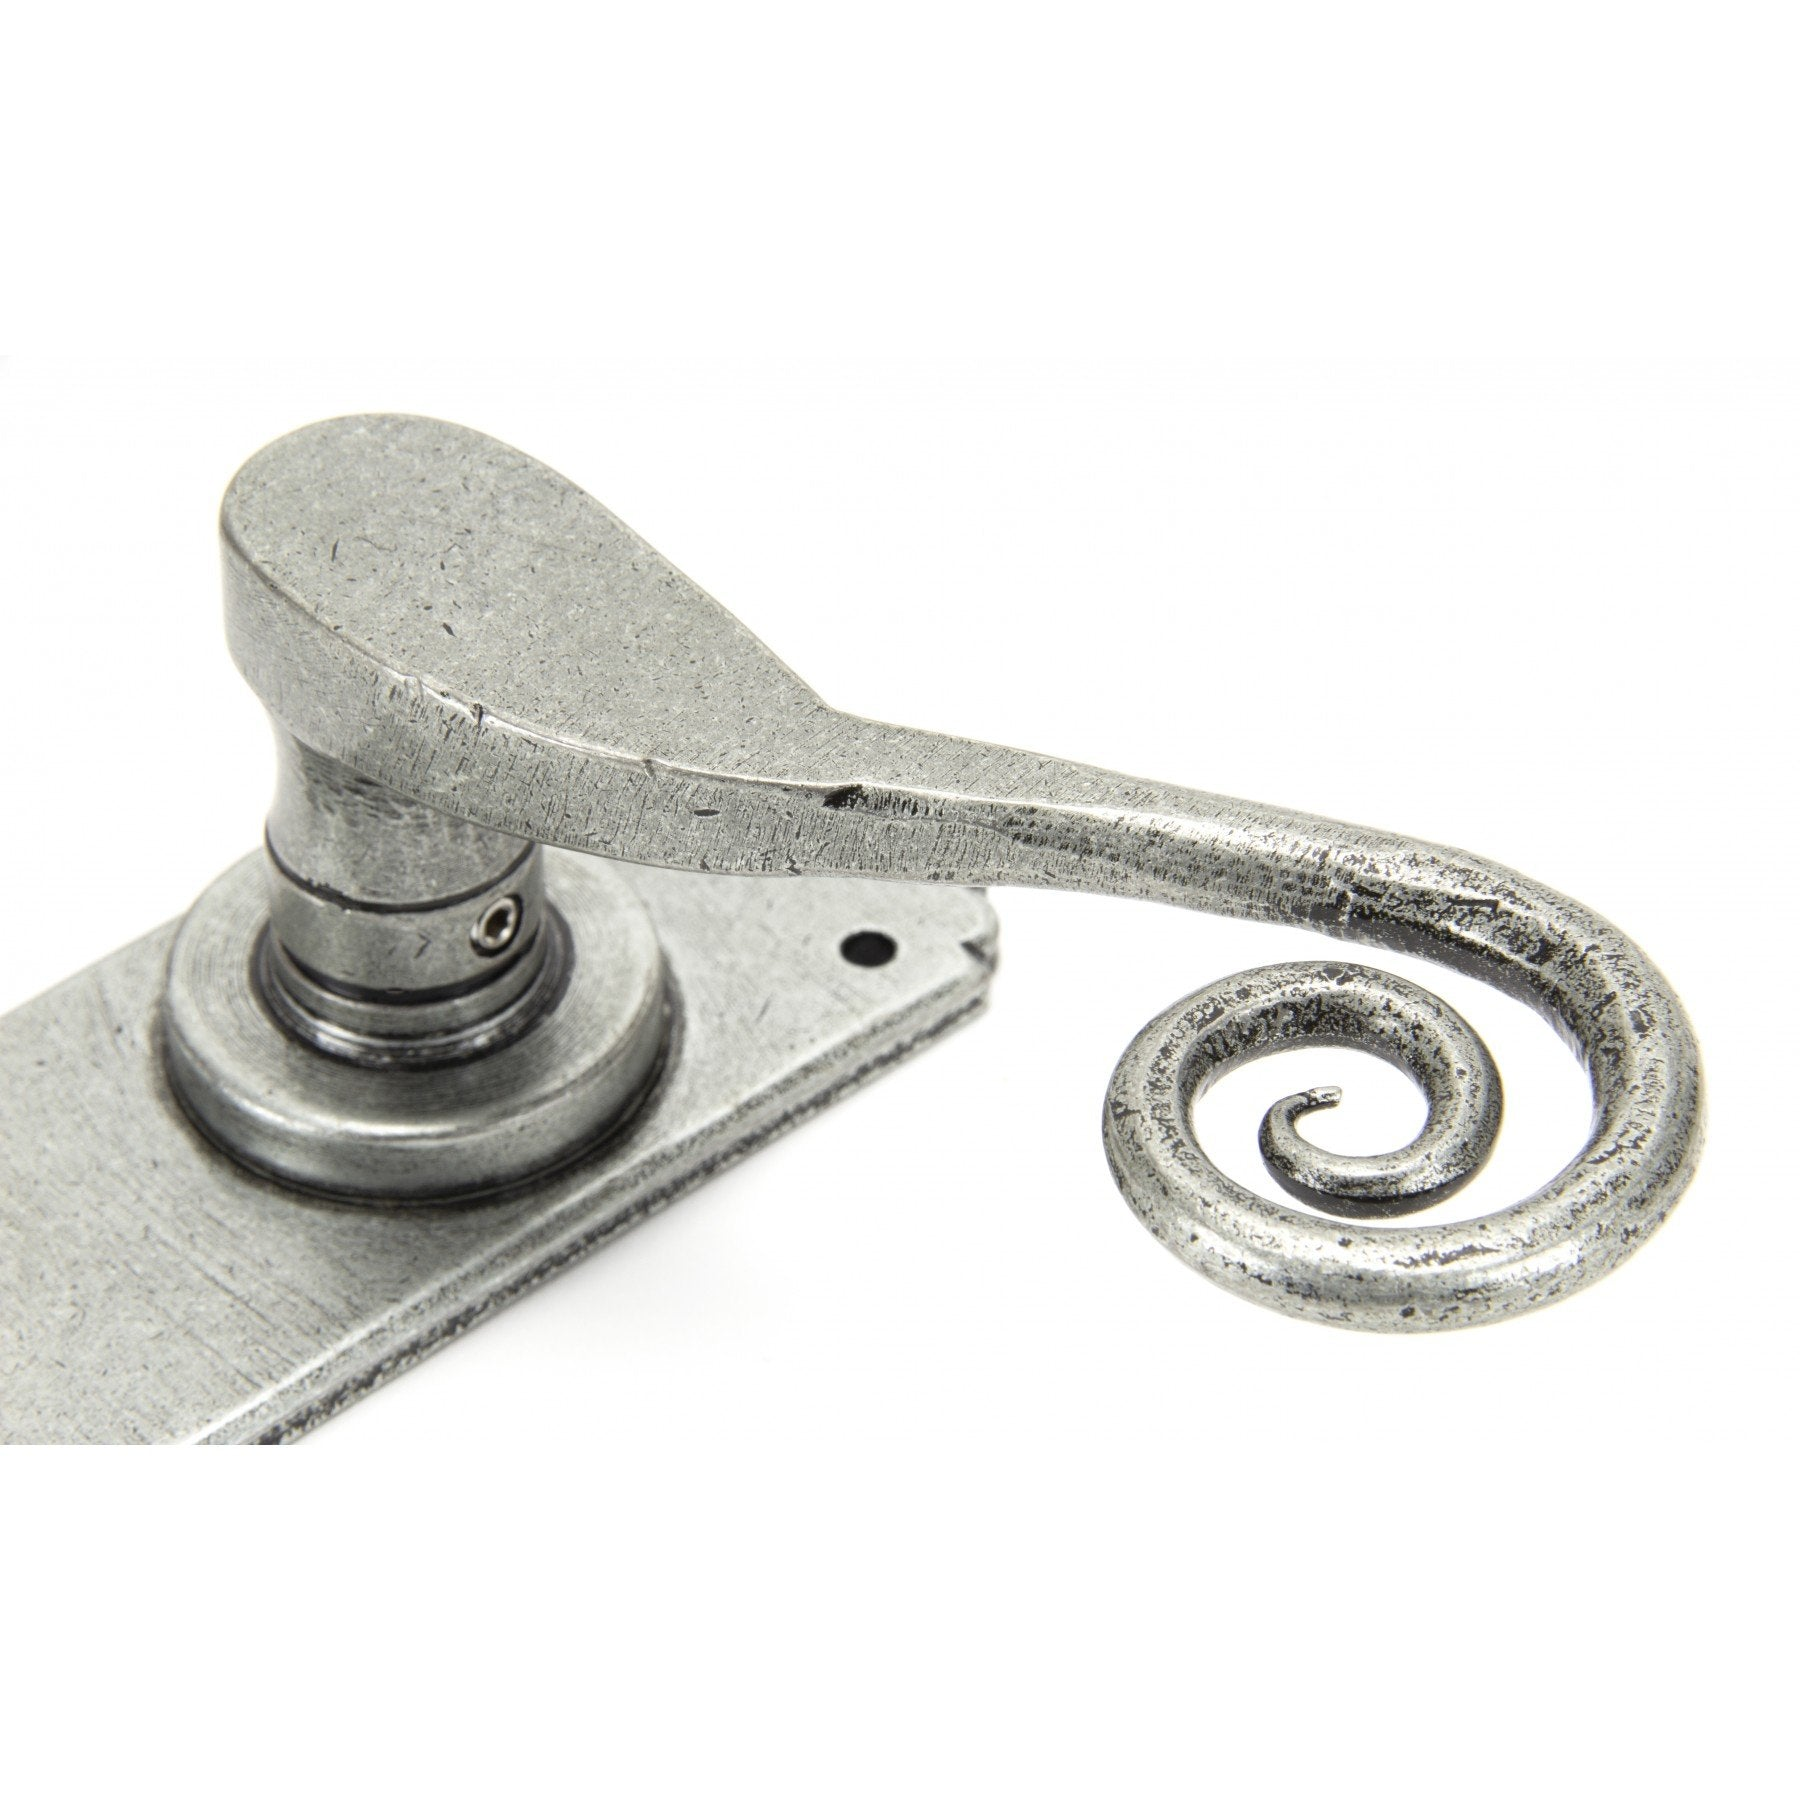 Pewter Monkeytail Sprung Lever Bathroom Set